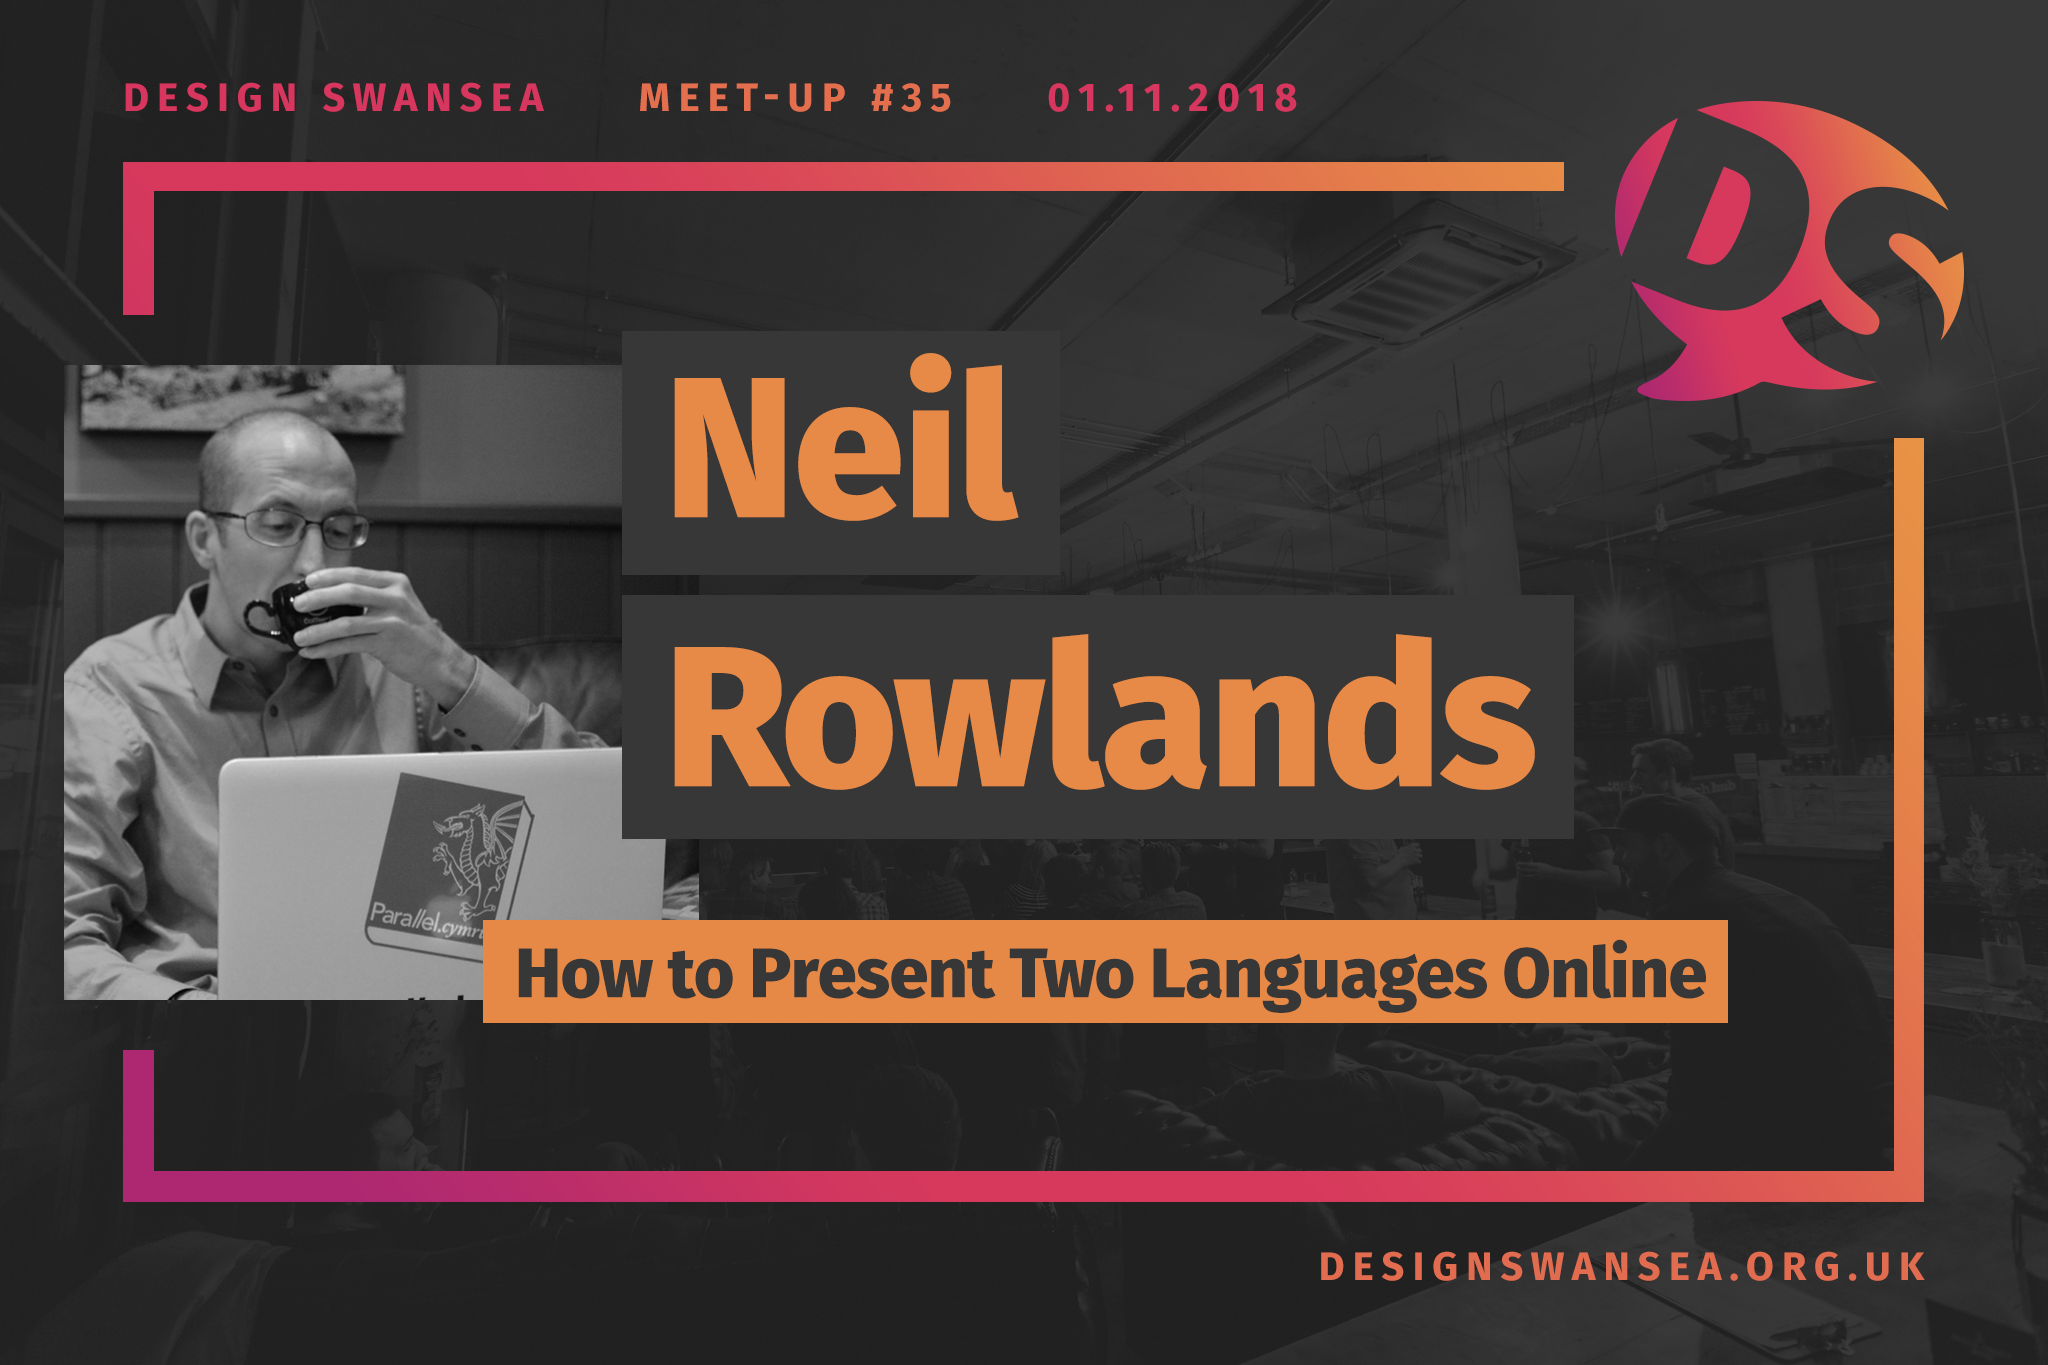 Neil Rowlands will be talking about presenting two languages online.